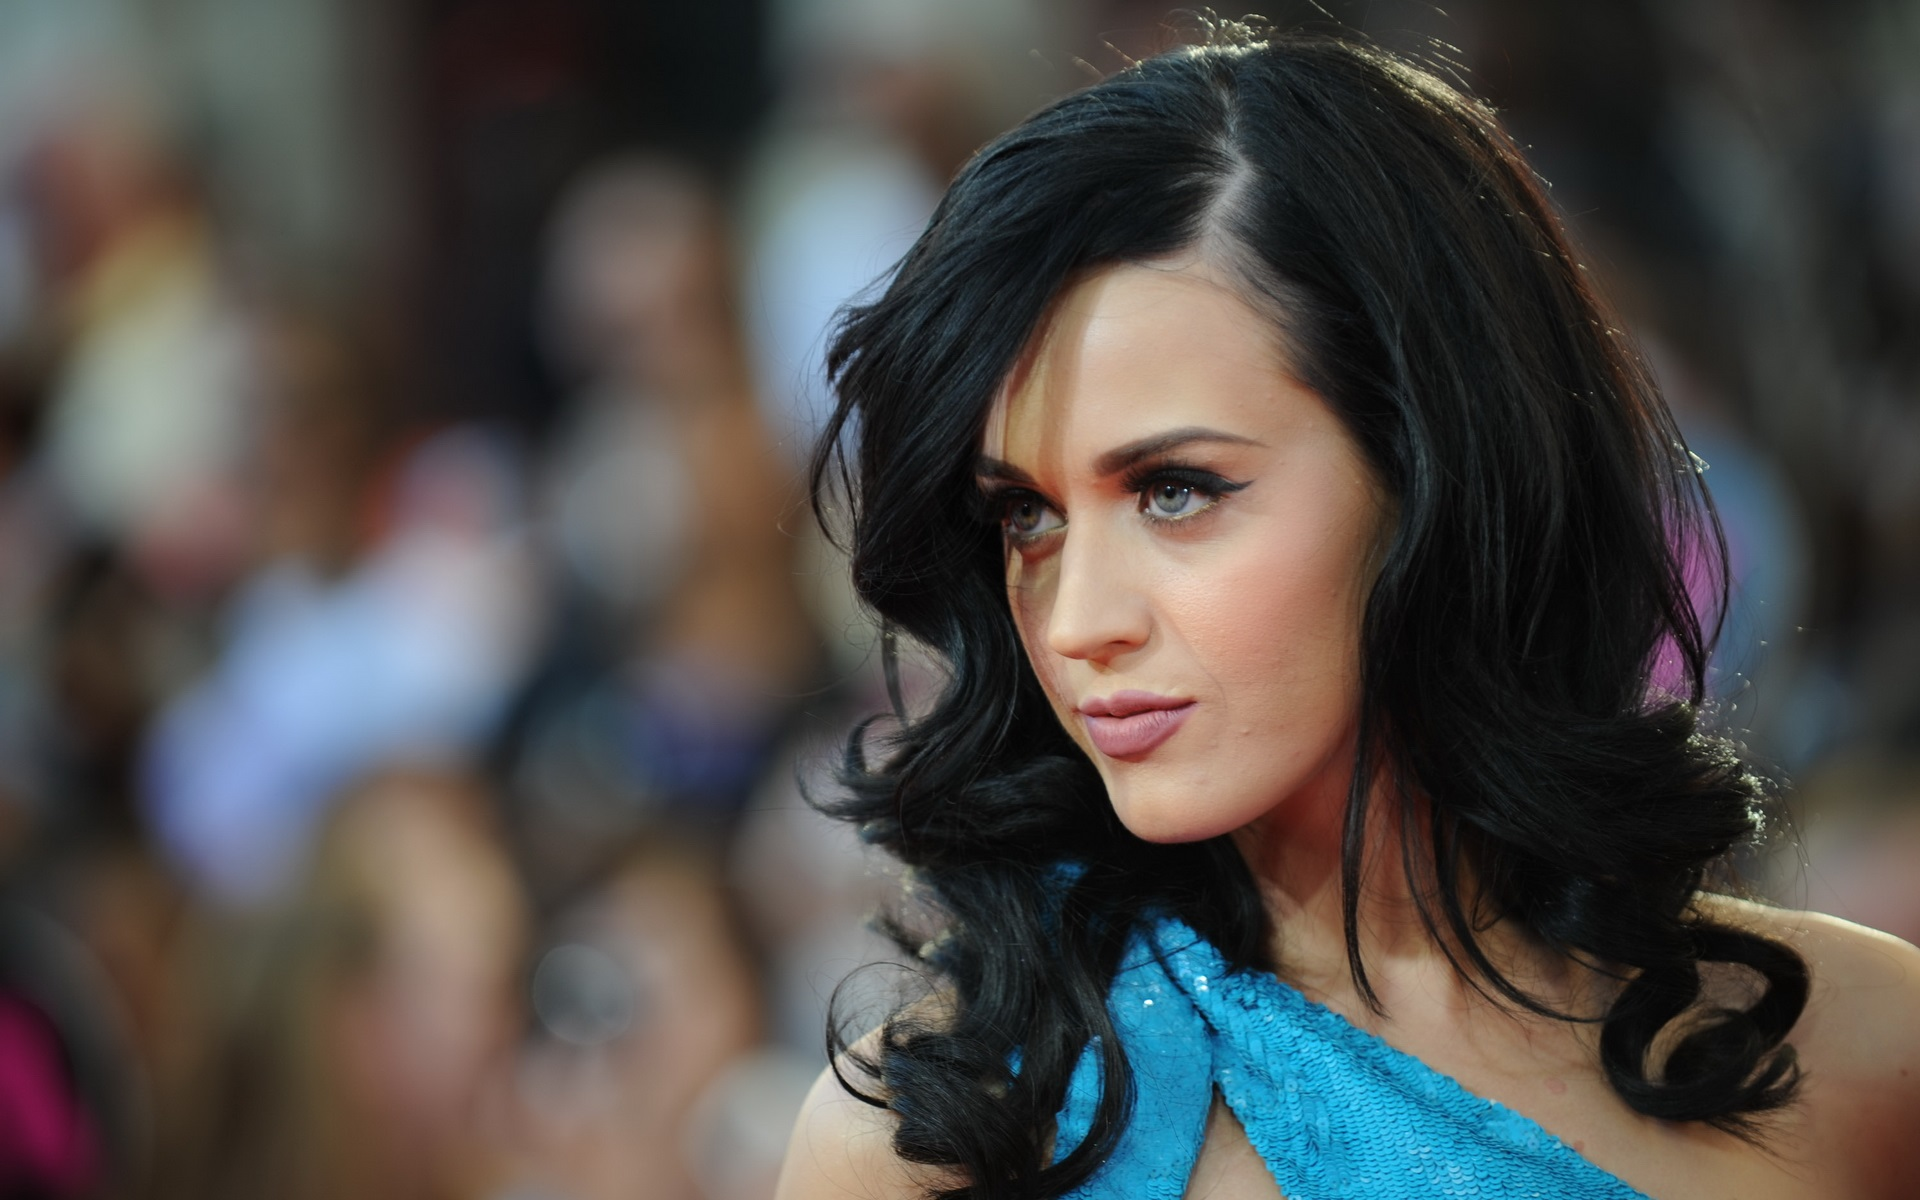 Katy Perry Wallpaper 37